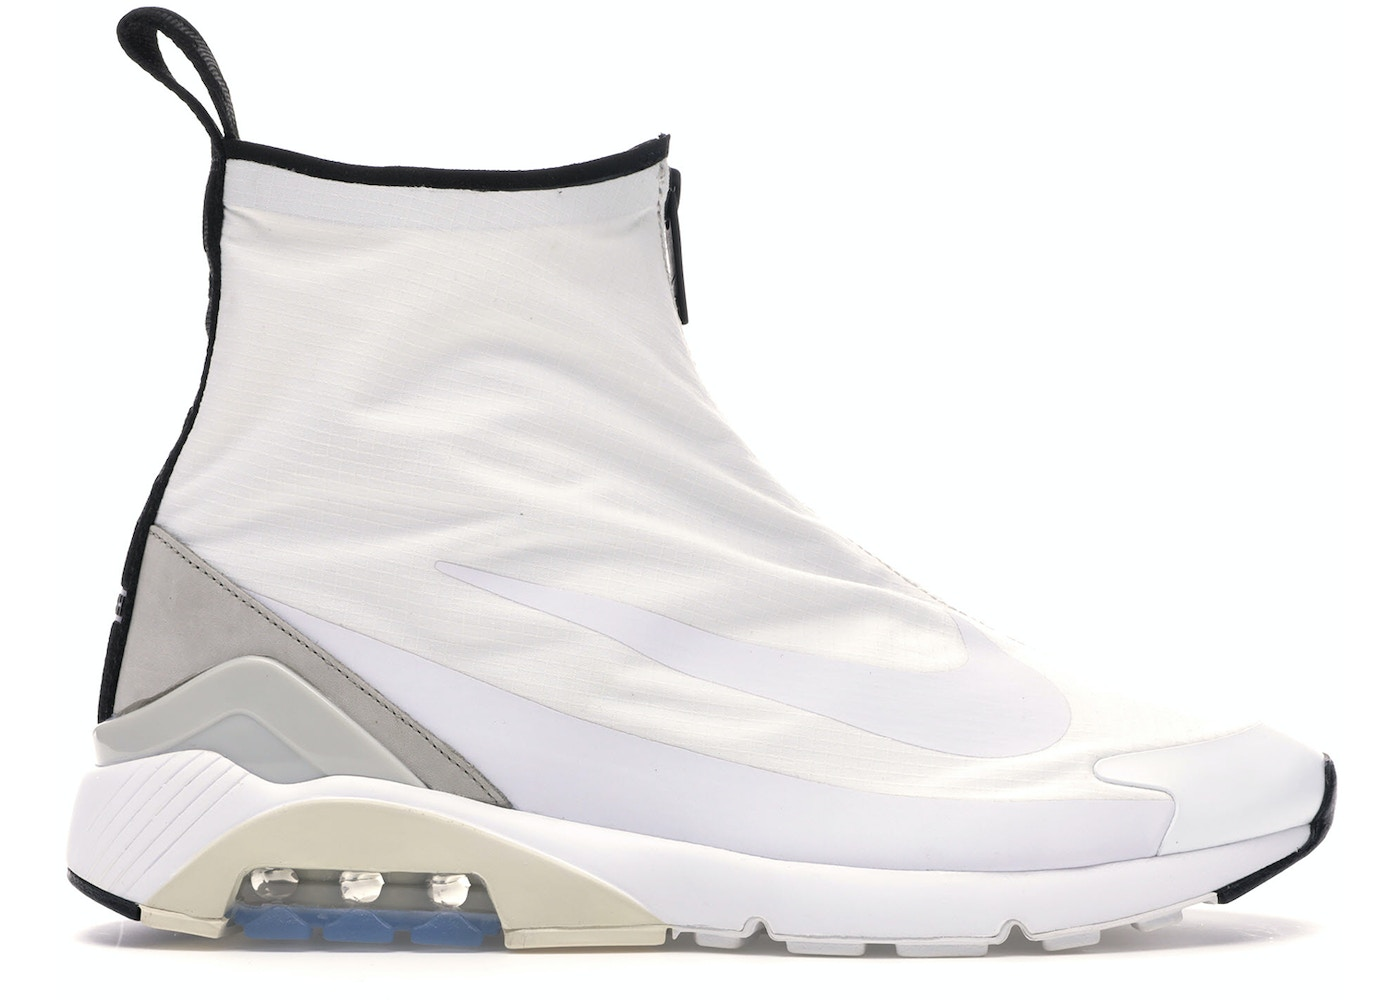 best wholesaler closer at outlet store sale Air Max 180 High Ambush White